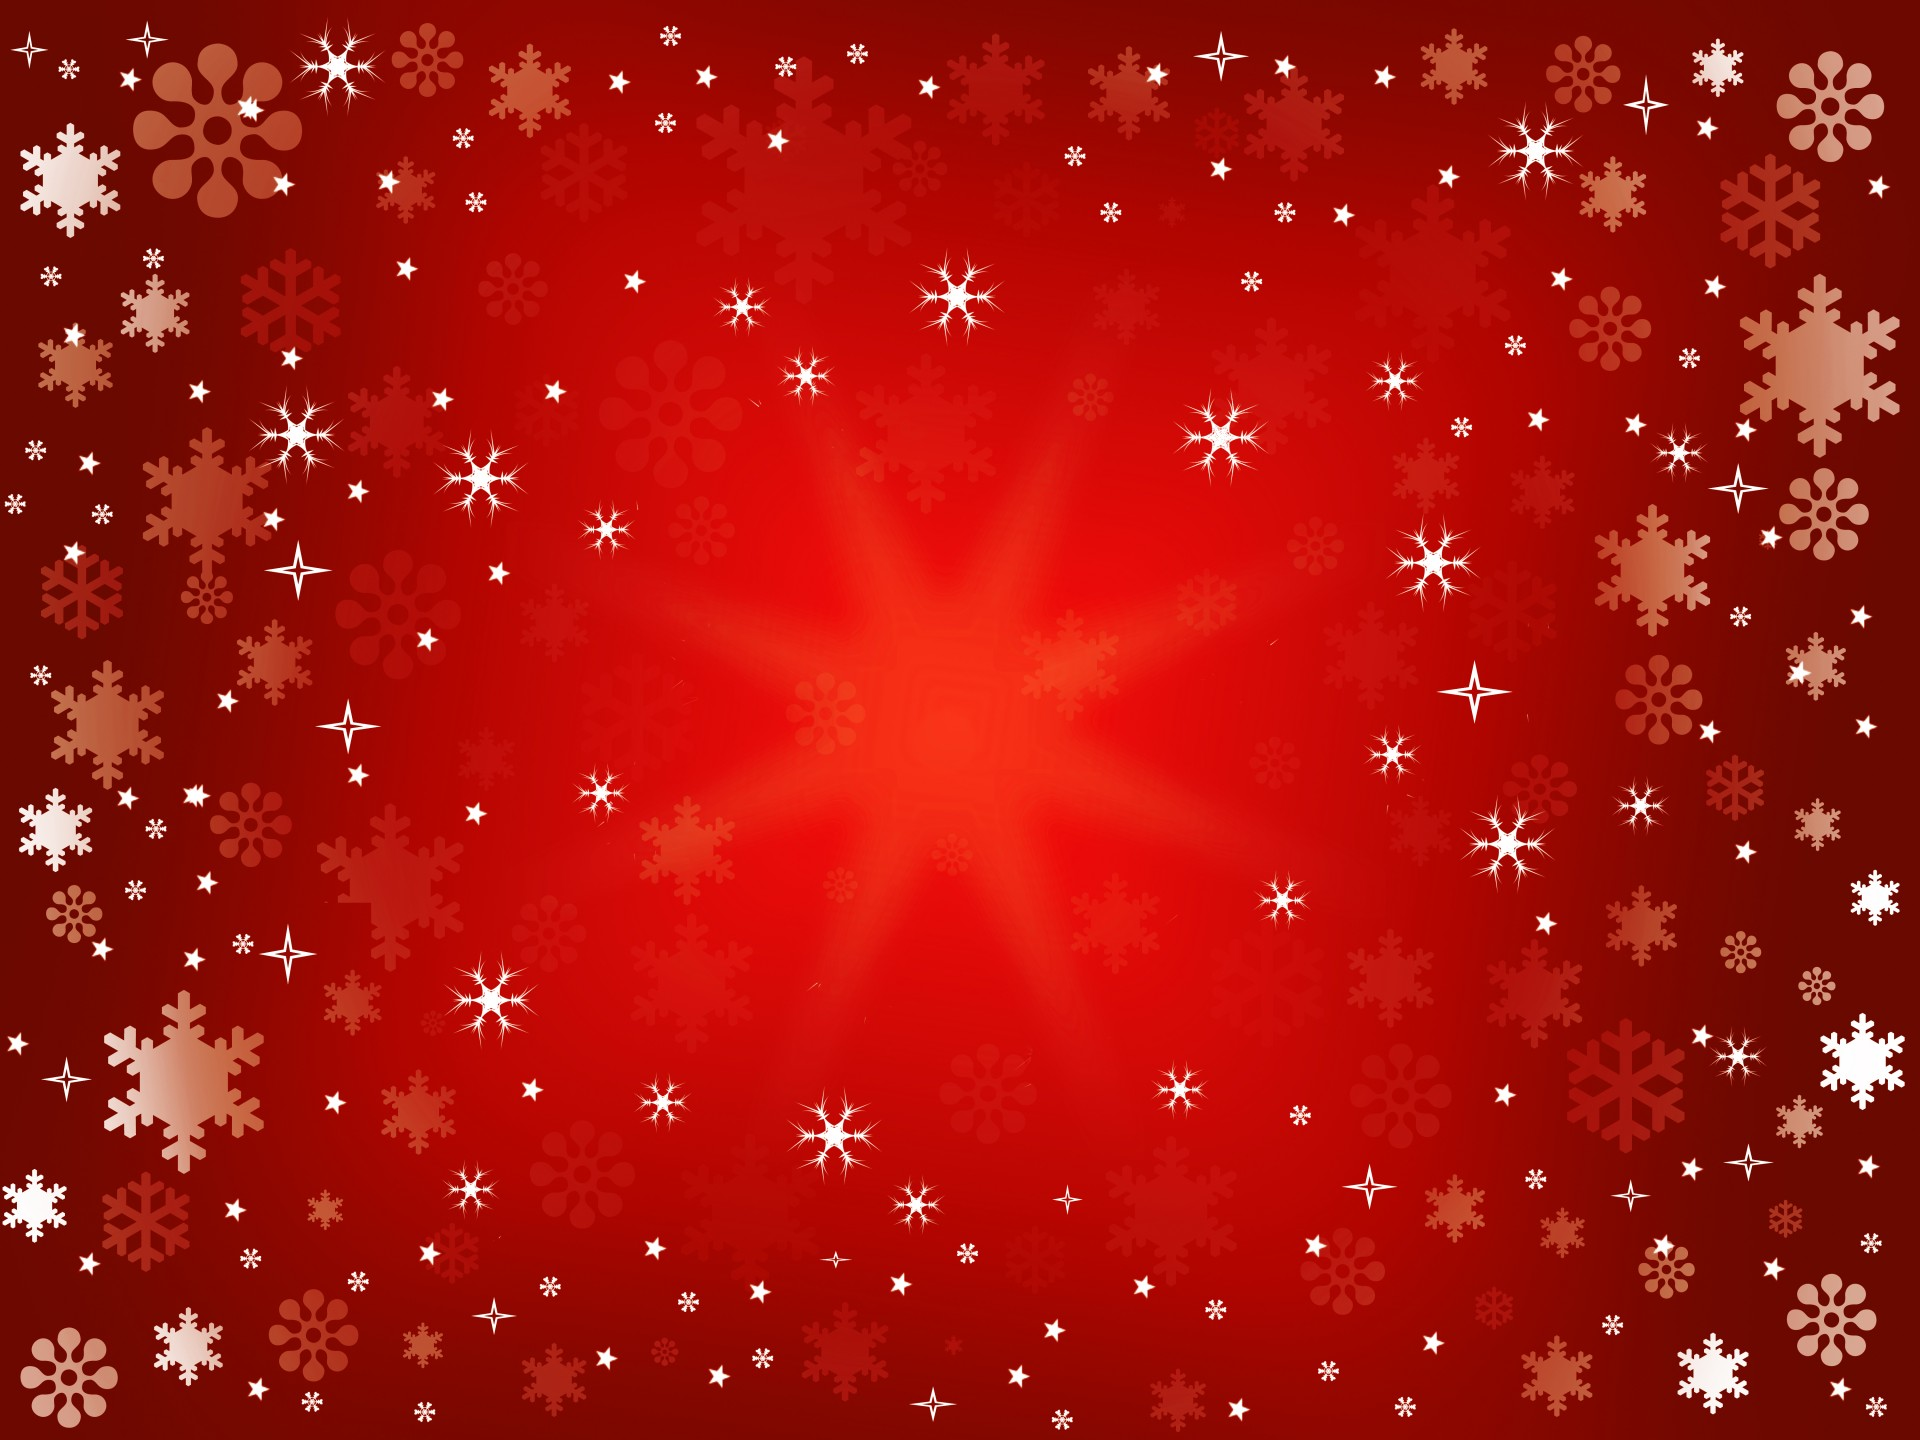 Red Holiday Background Free Stock Photo - Public Domain Pictures